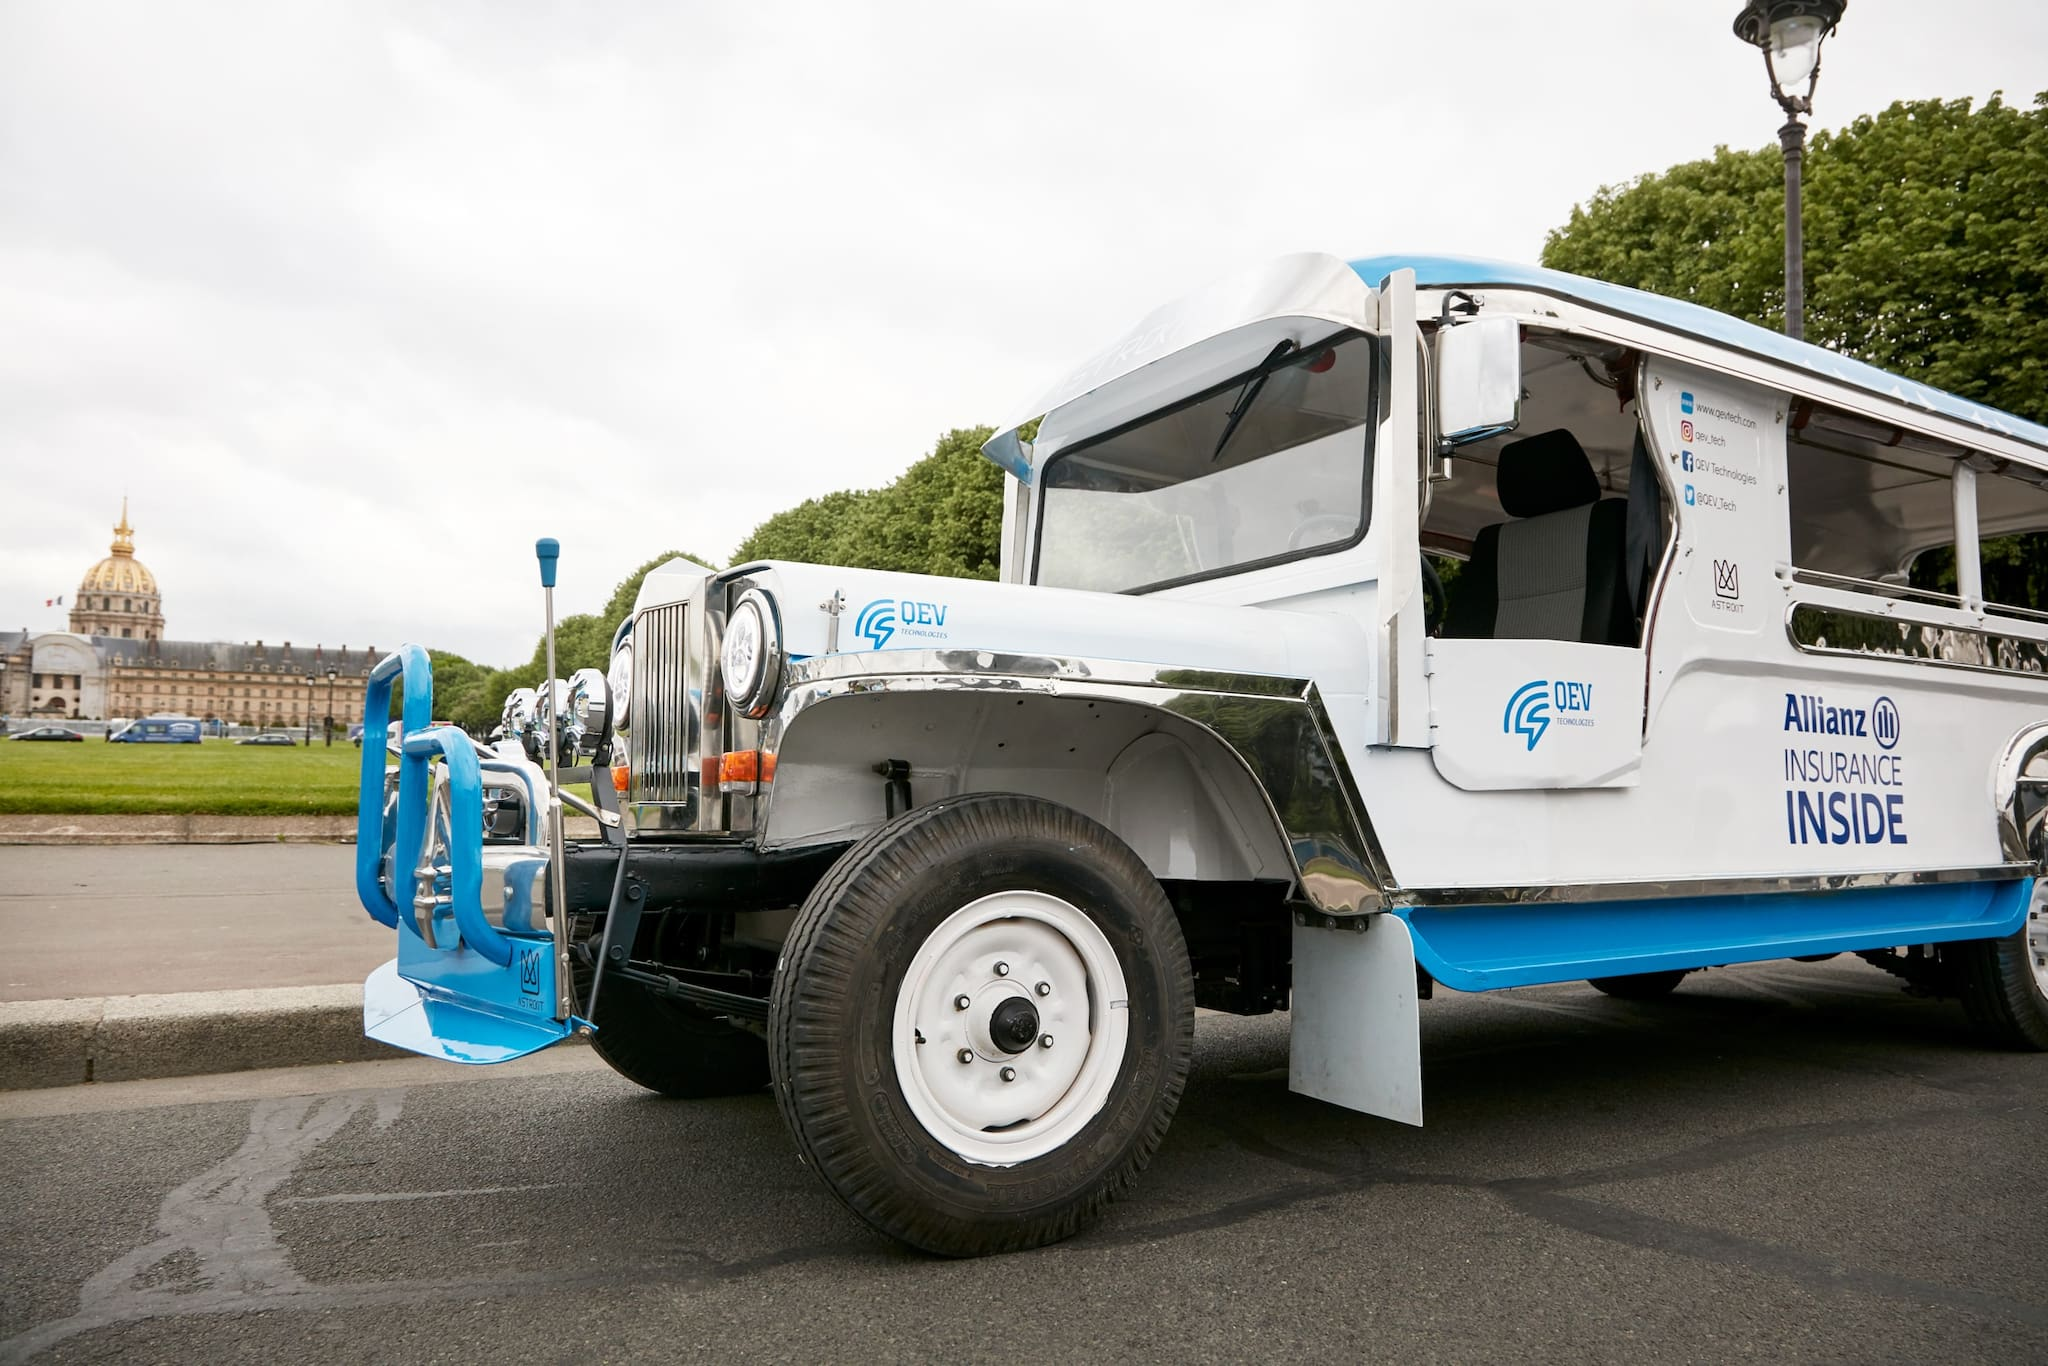 Electric Jeepney Roams Streets of Paris